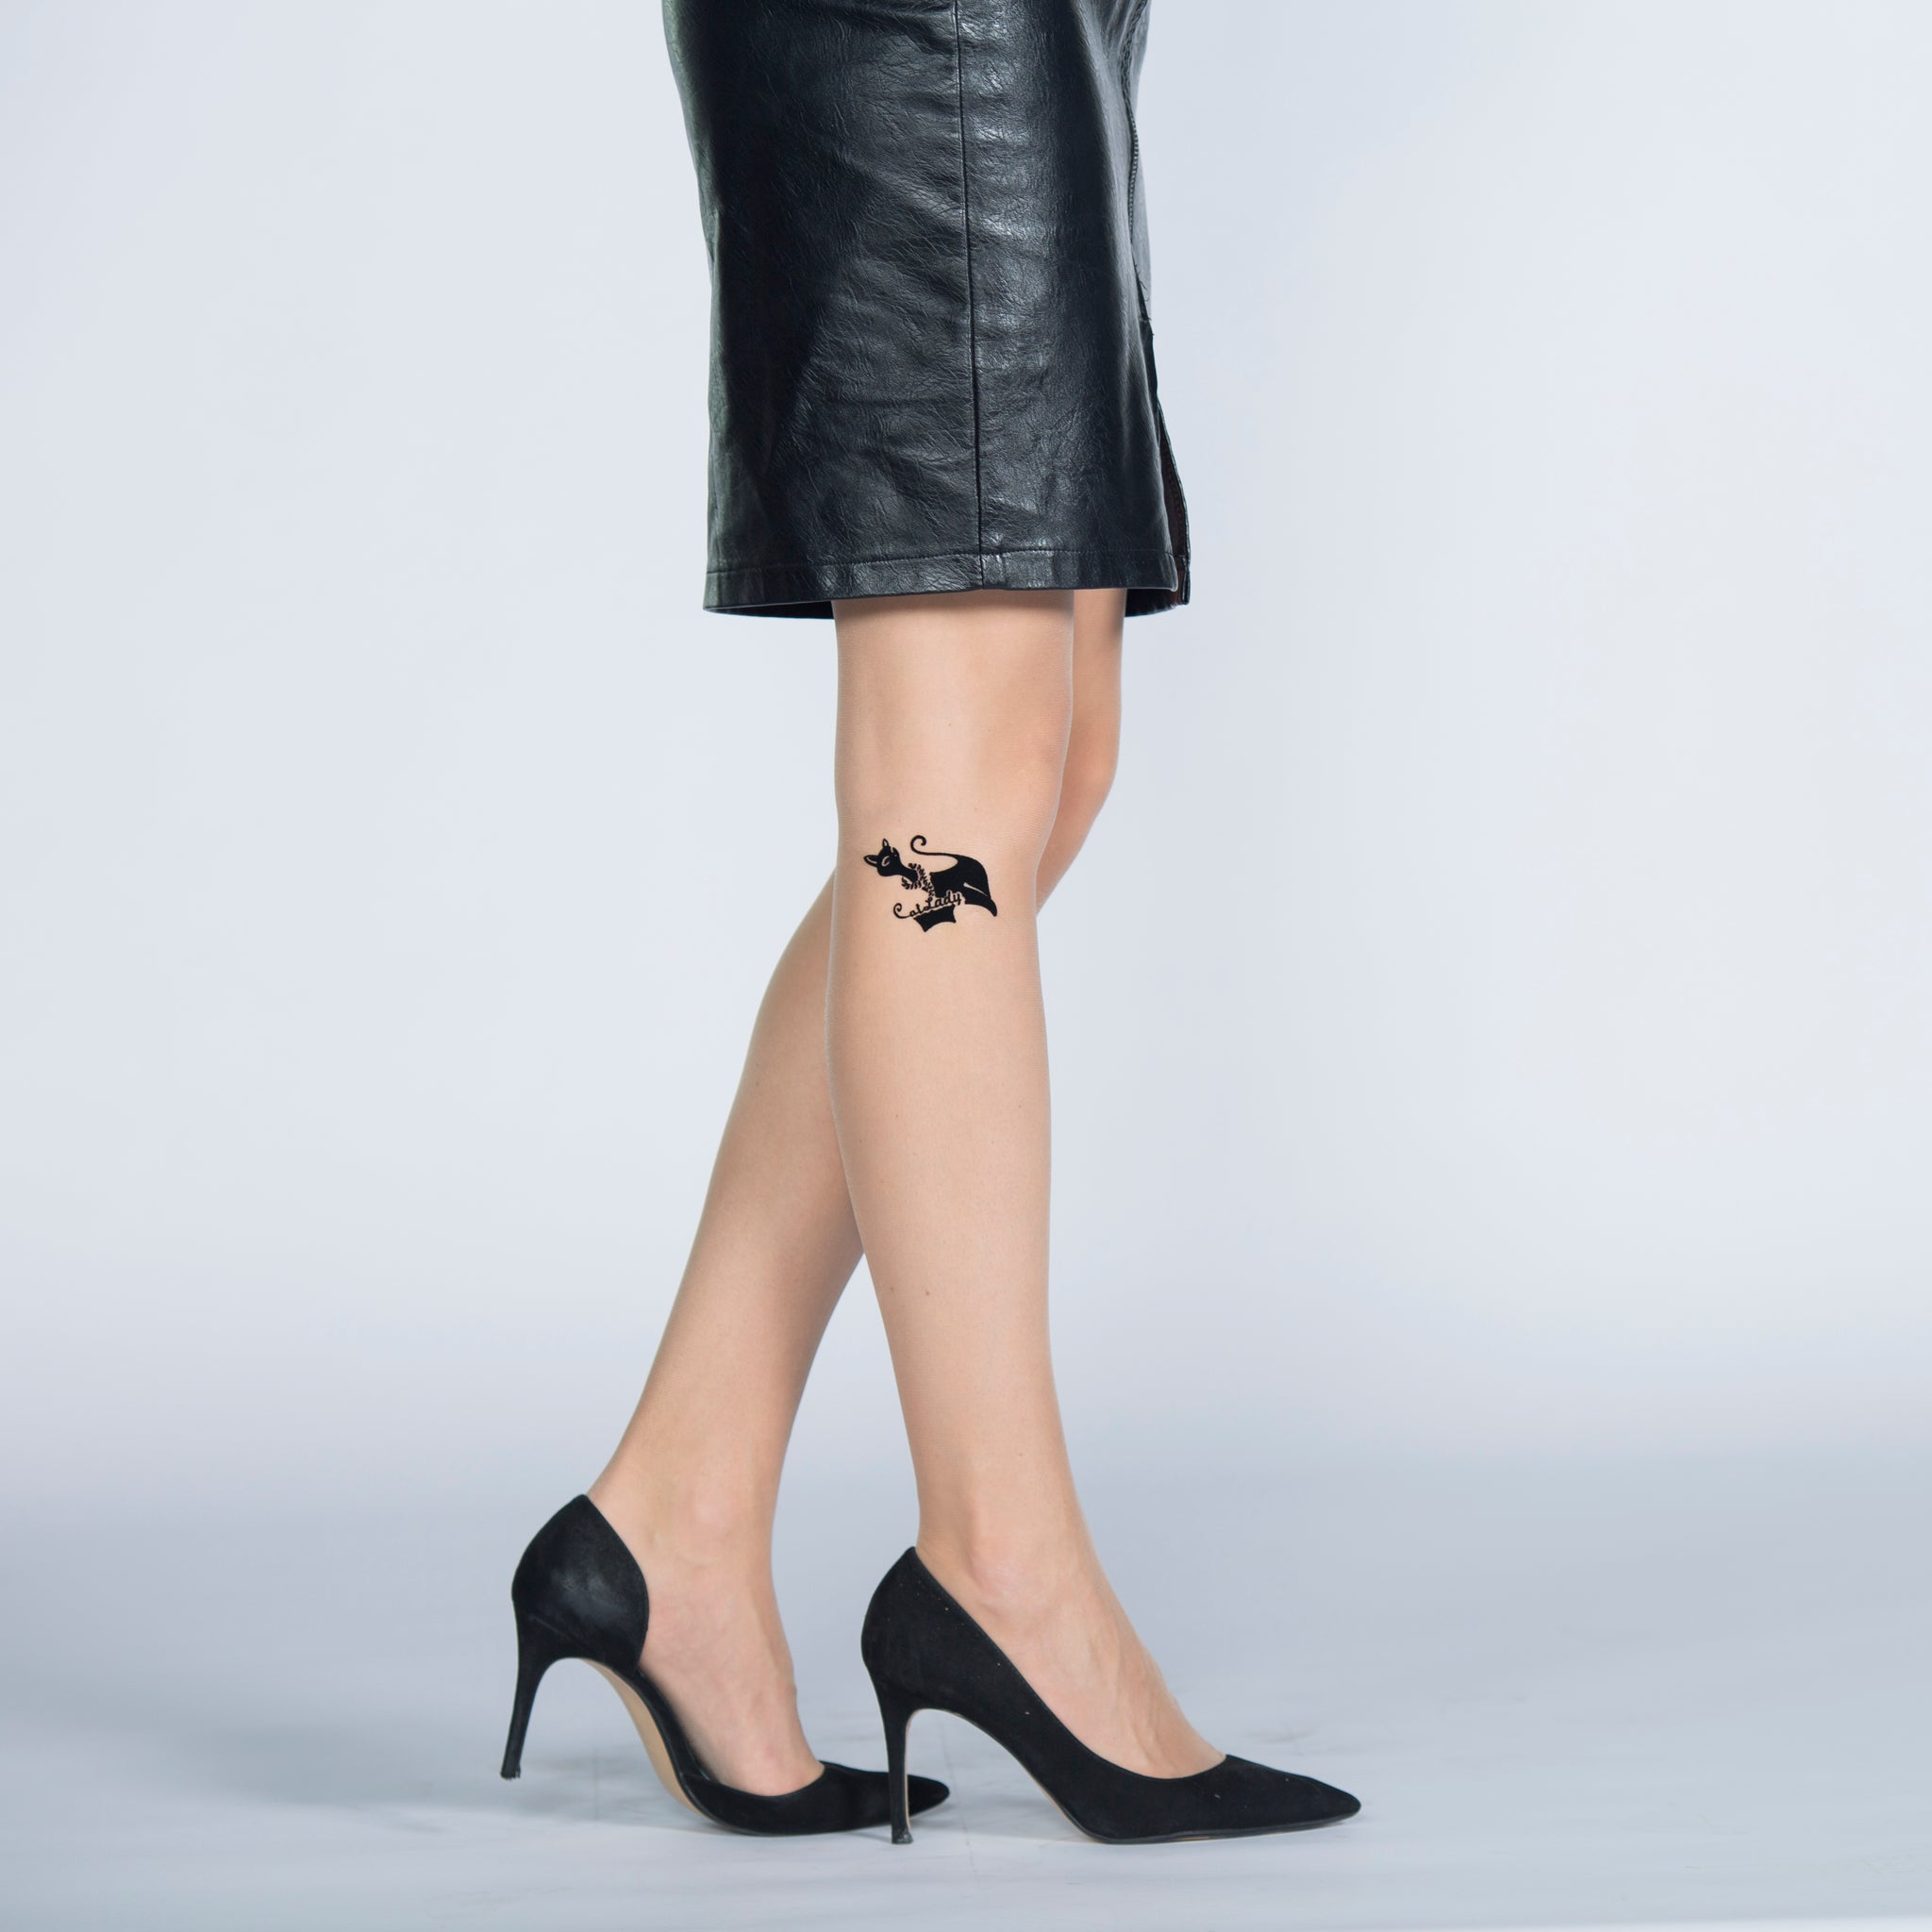 Tattoo 15 Den, Silk Reflections, Reinforced Toe Pantyhose